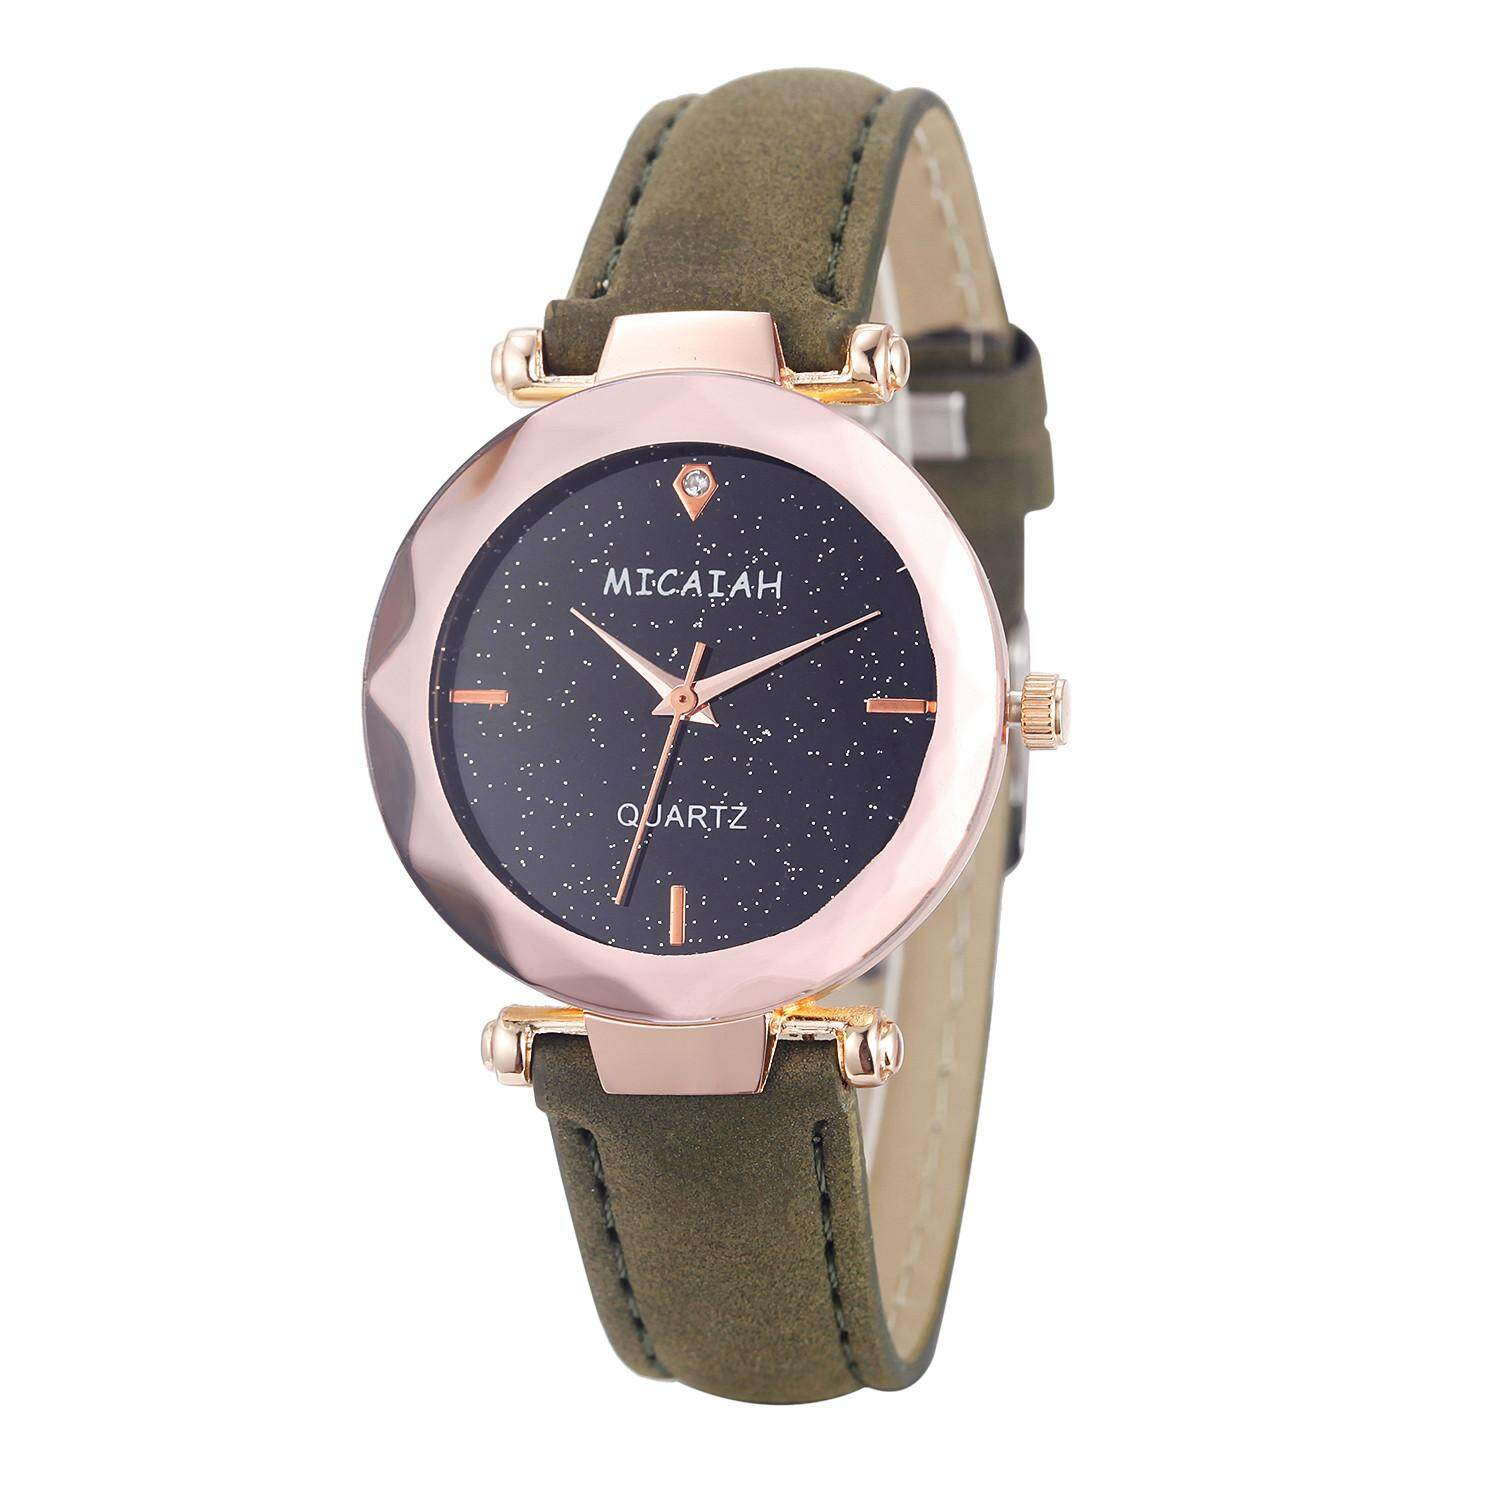 875089355e6 Women Fashion Watches With Best Price At Lazada Malaysia